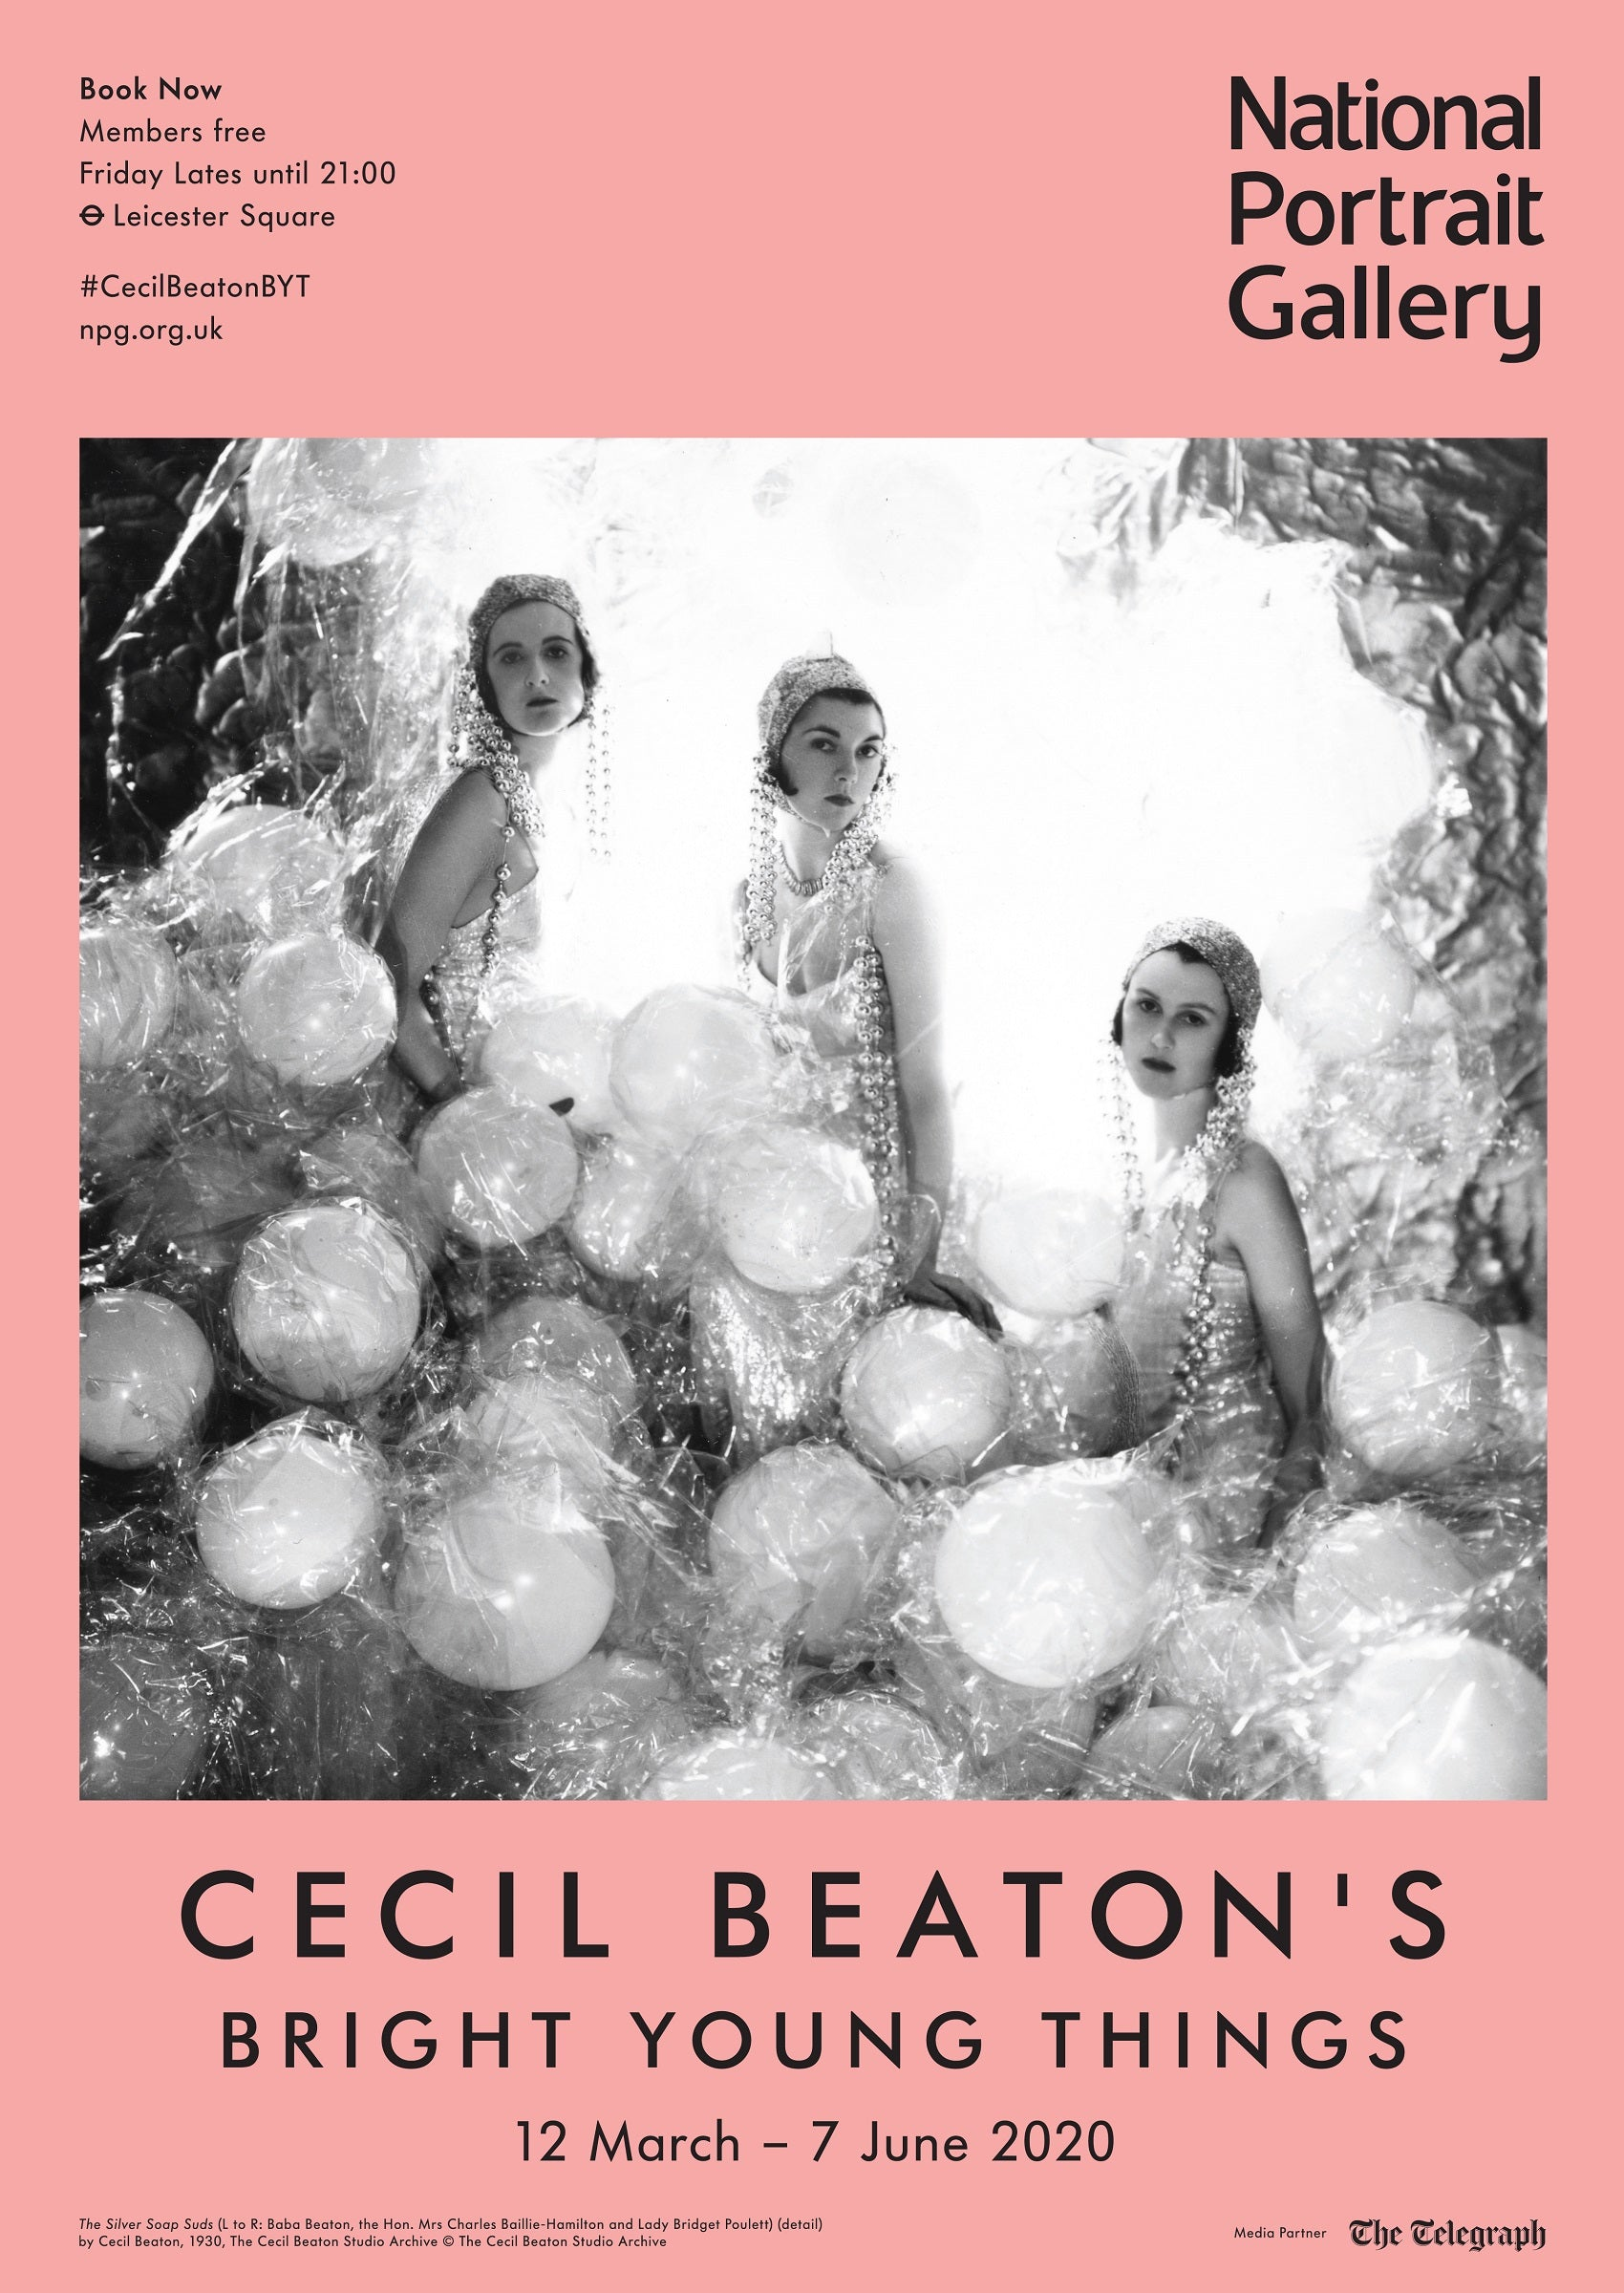 Cecil Beaton's Bright Young Things Exhibition Poster